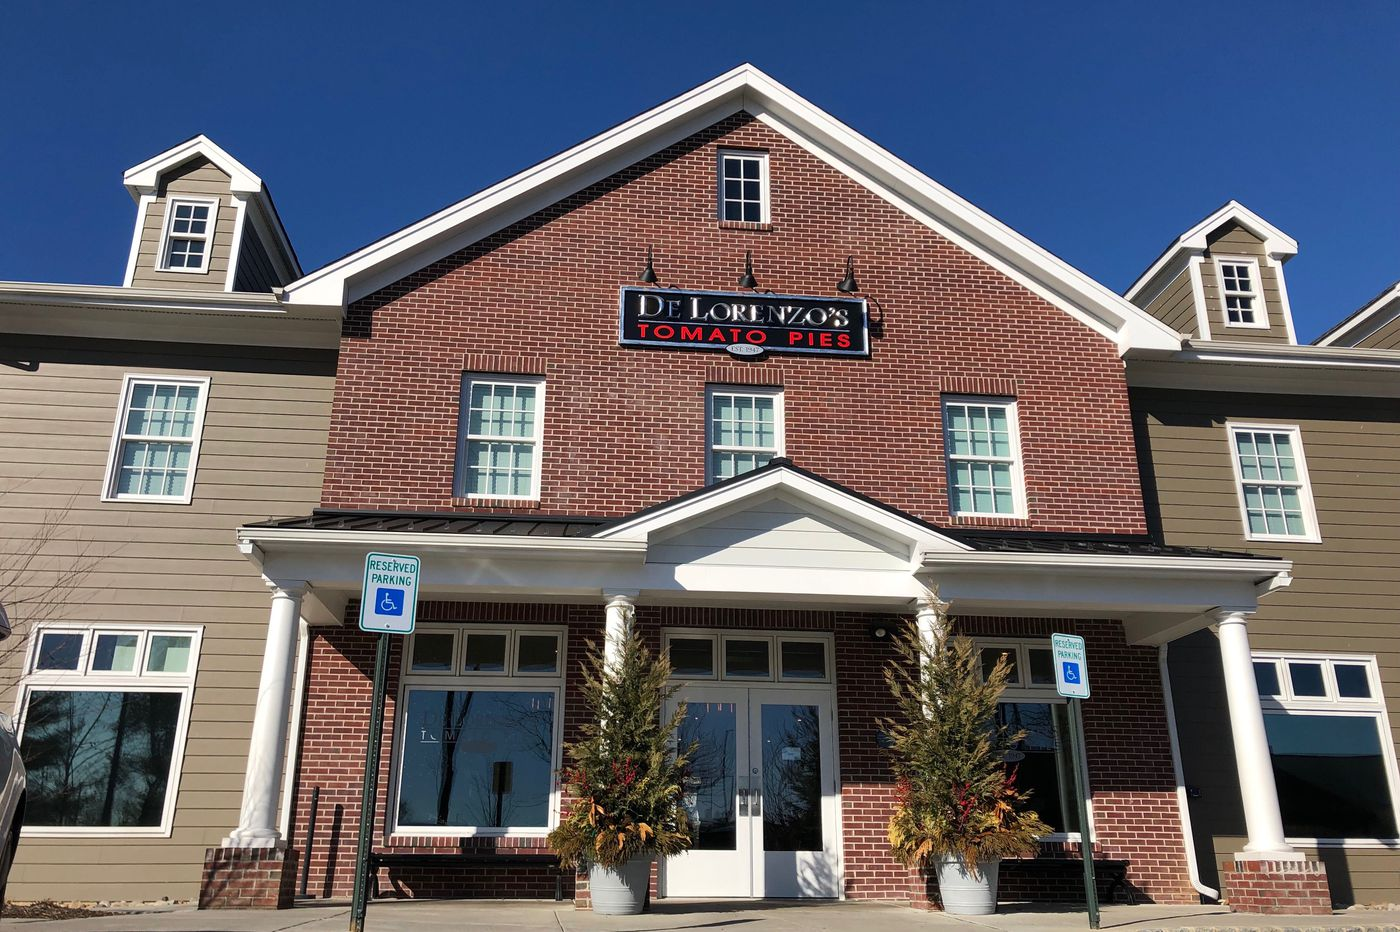 Bucks County's last dry town could start allowing alcohol sales thanks to a new state law